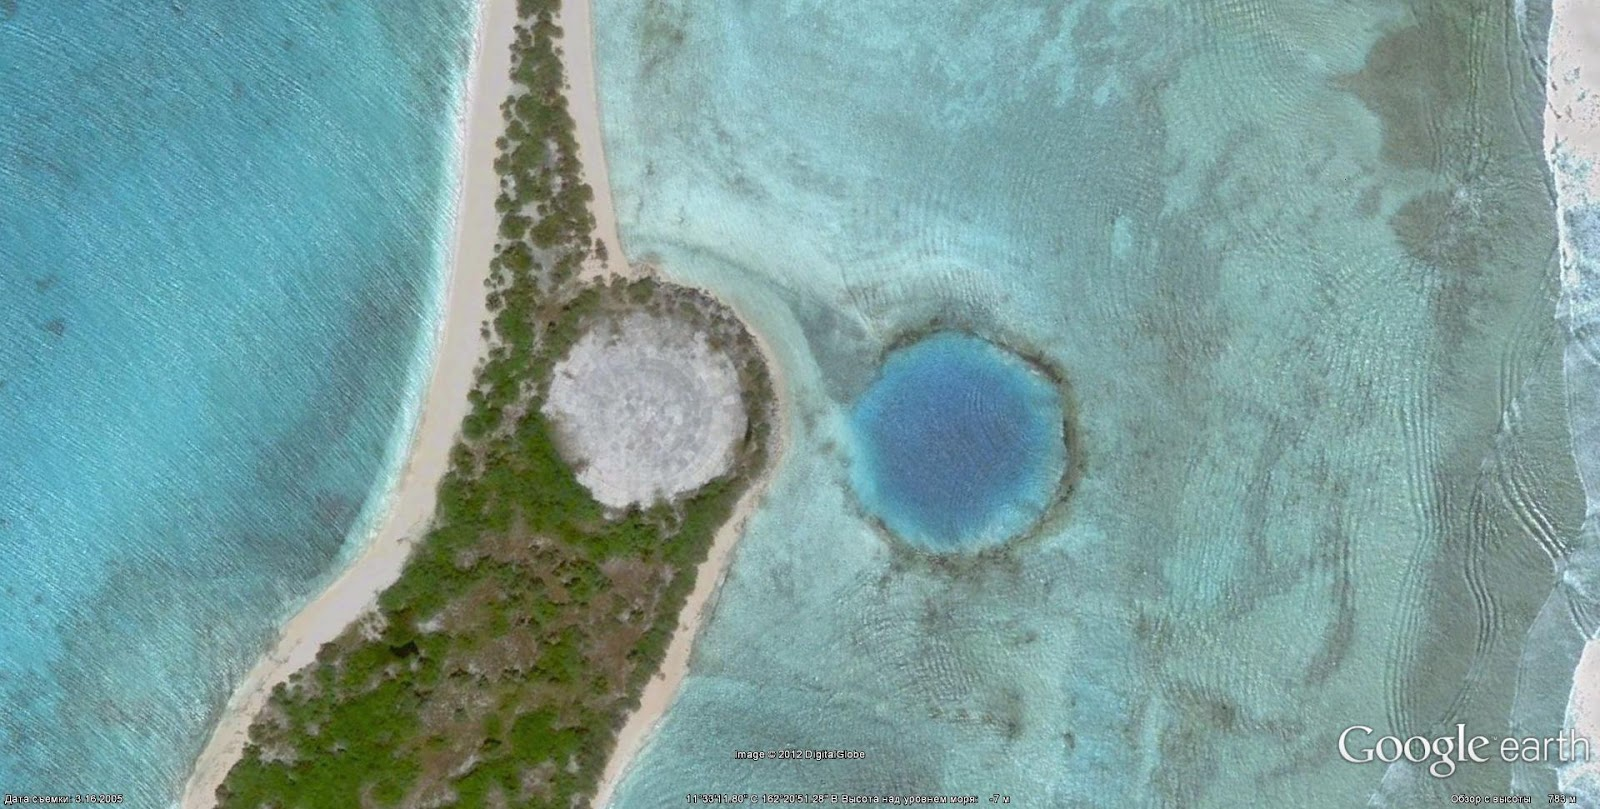 Stop frames of the Planet: Enewetak Atoll, Micronesia